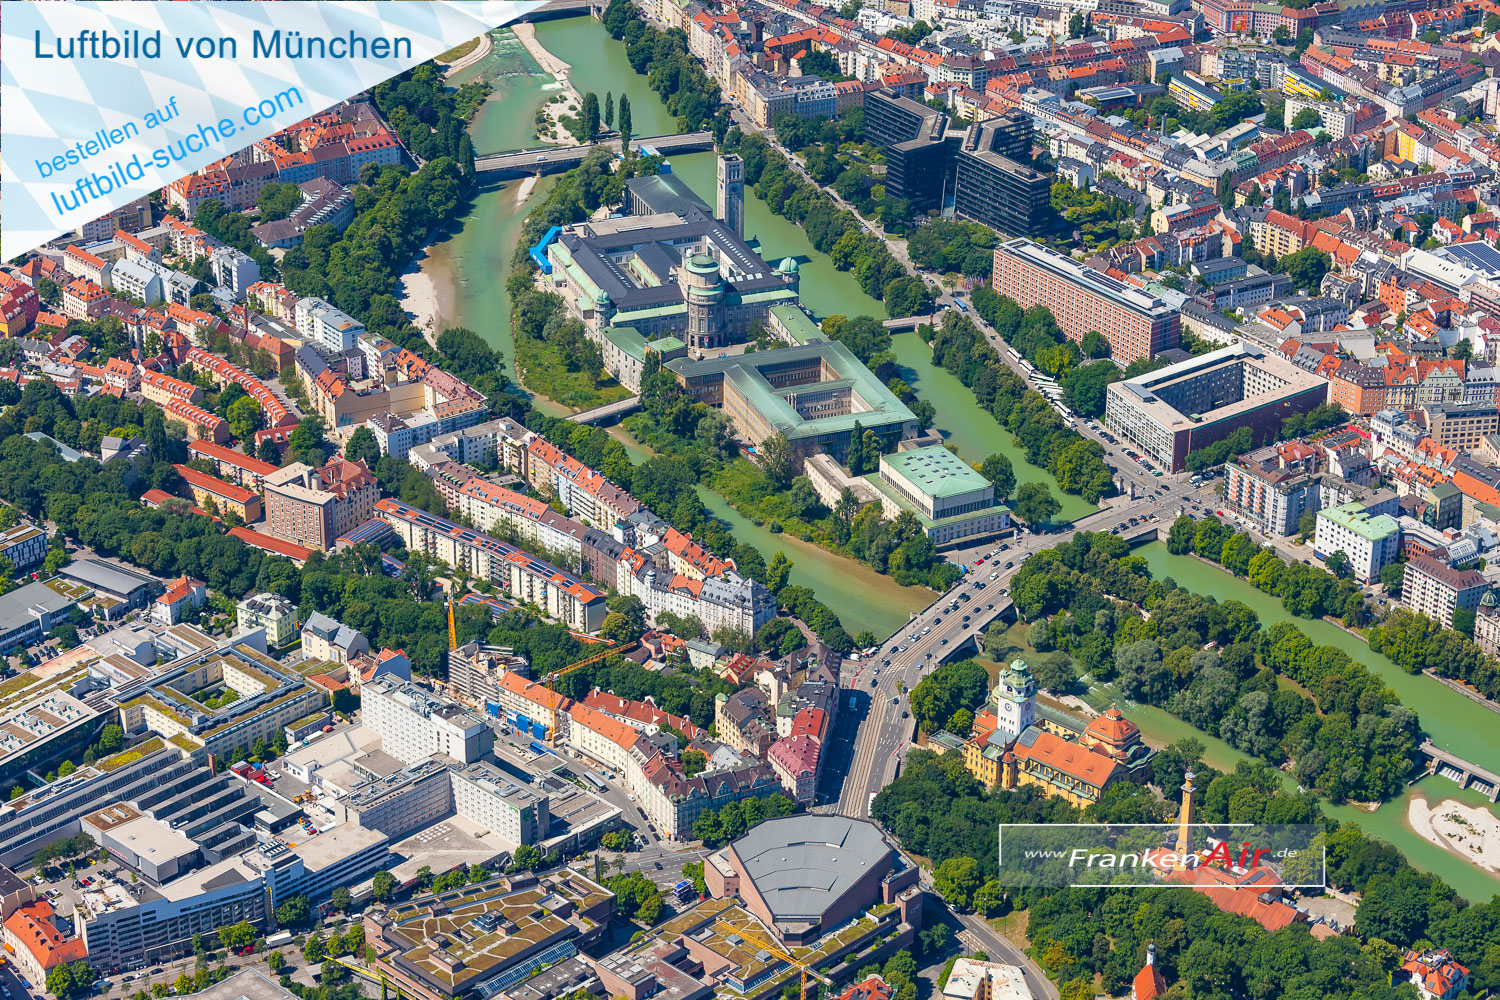 Museumsinsel-muenchen-17-2387